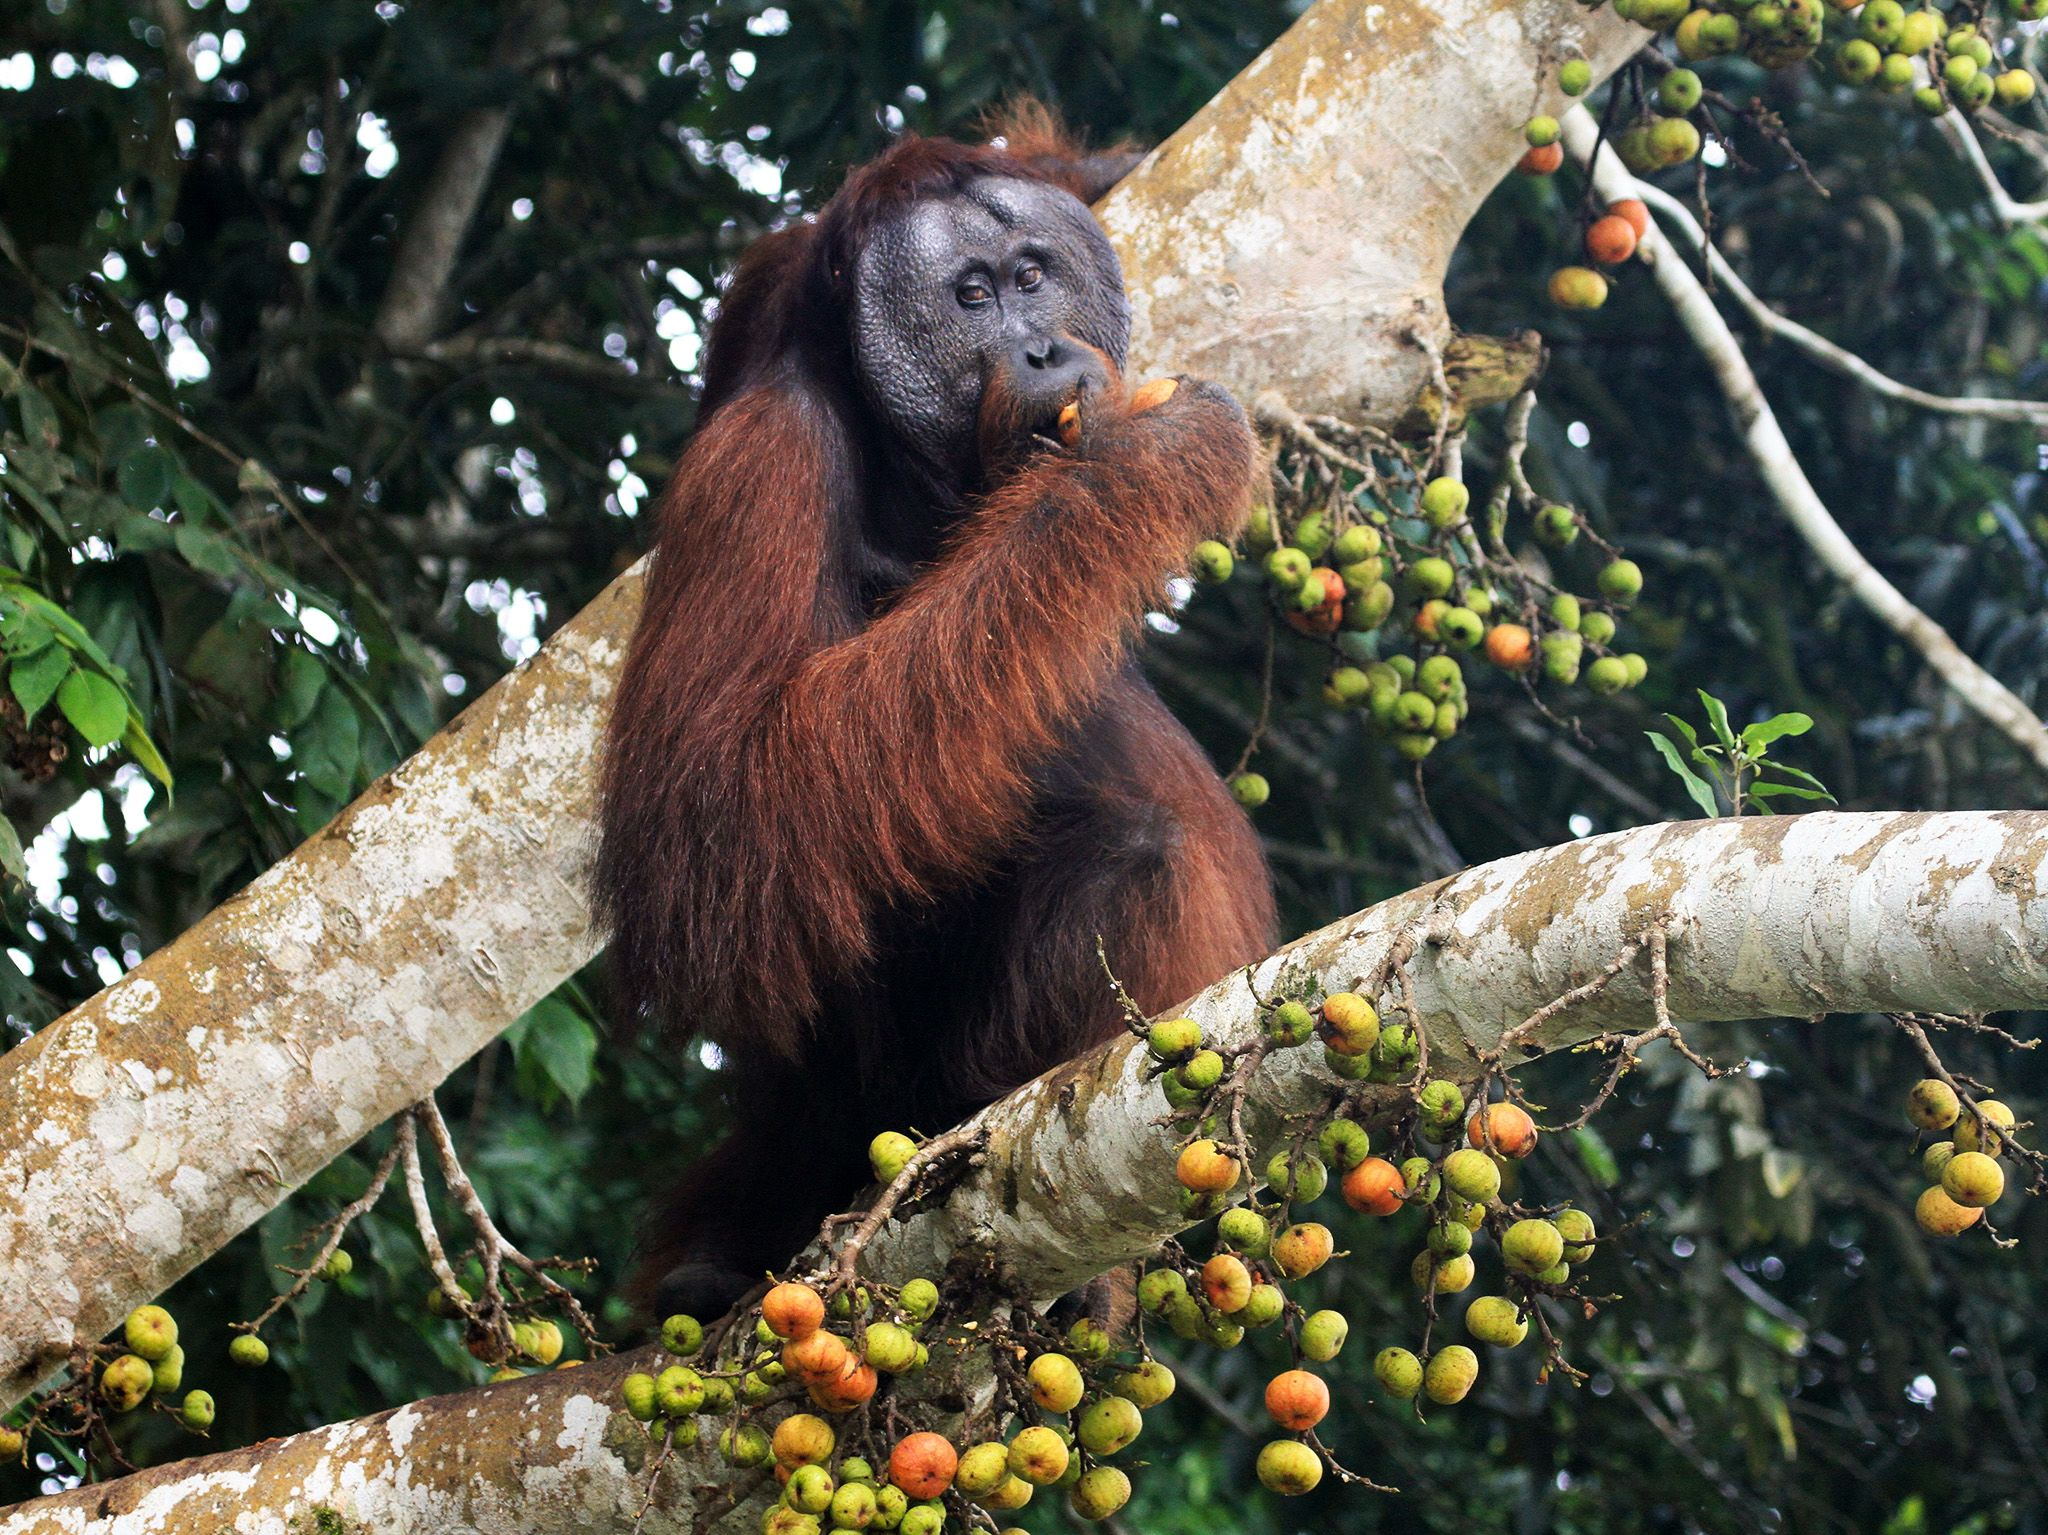 Borneo:  Mature male Orangutan sitting in tree amongst fig fruits, eating figs. This image is... [Foto del giorno - ottobre 2017]